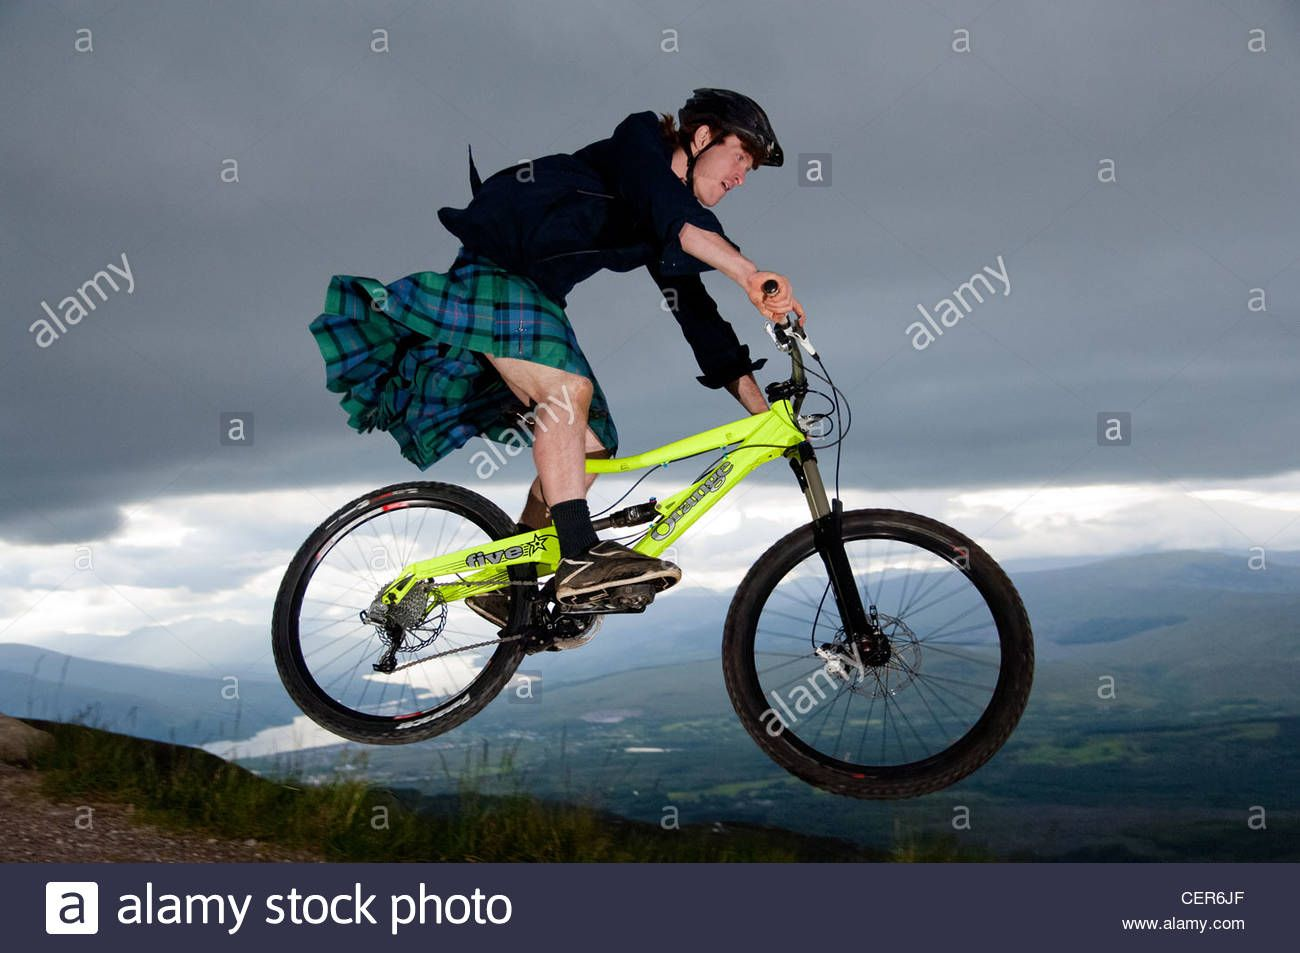 Young Man In Kilt Jumping On His Mountain Bike On The Downhill